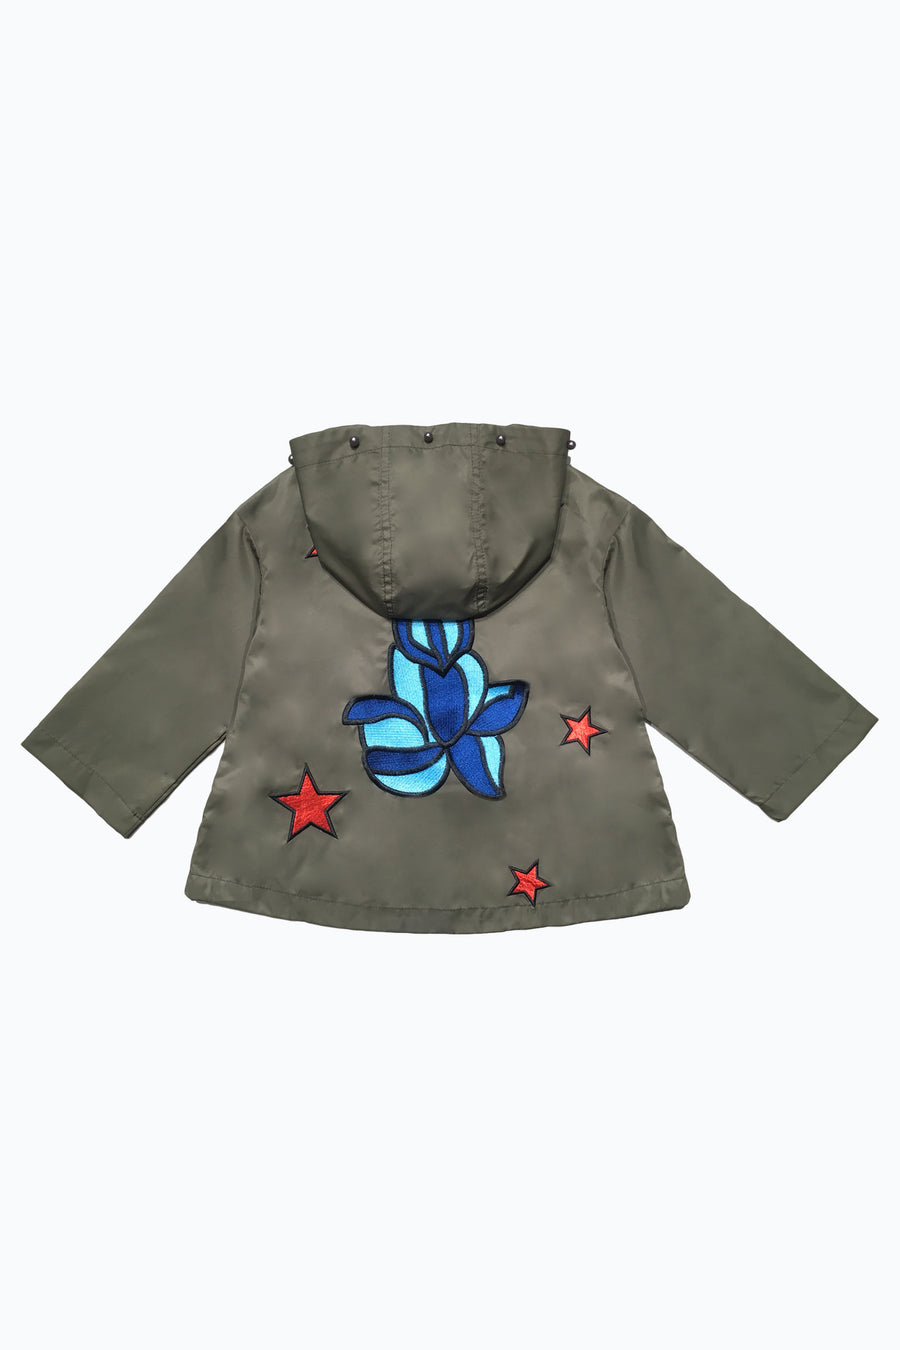 Little ZIZTAR Soul Blossoming Jacket - ZIZTAR